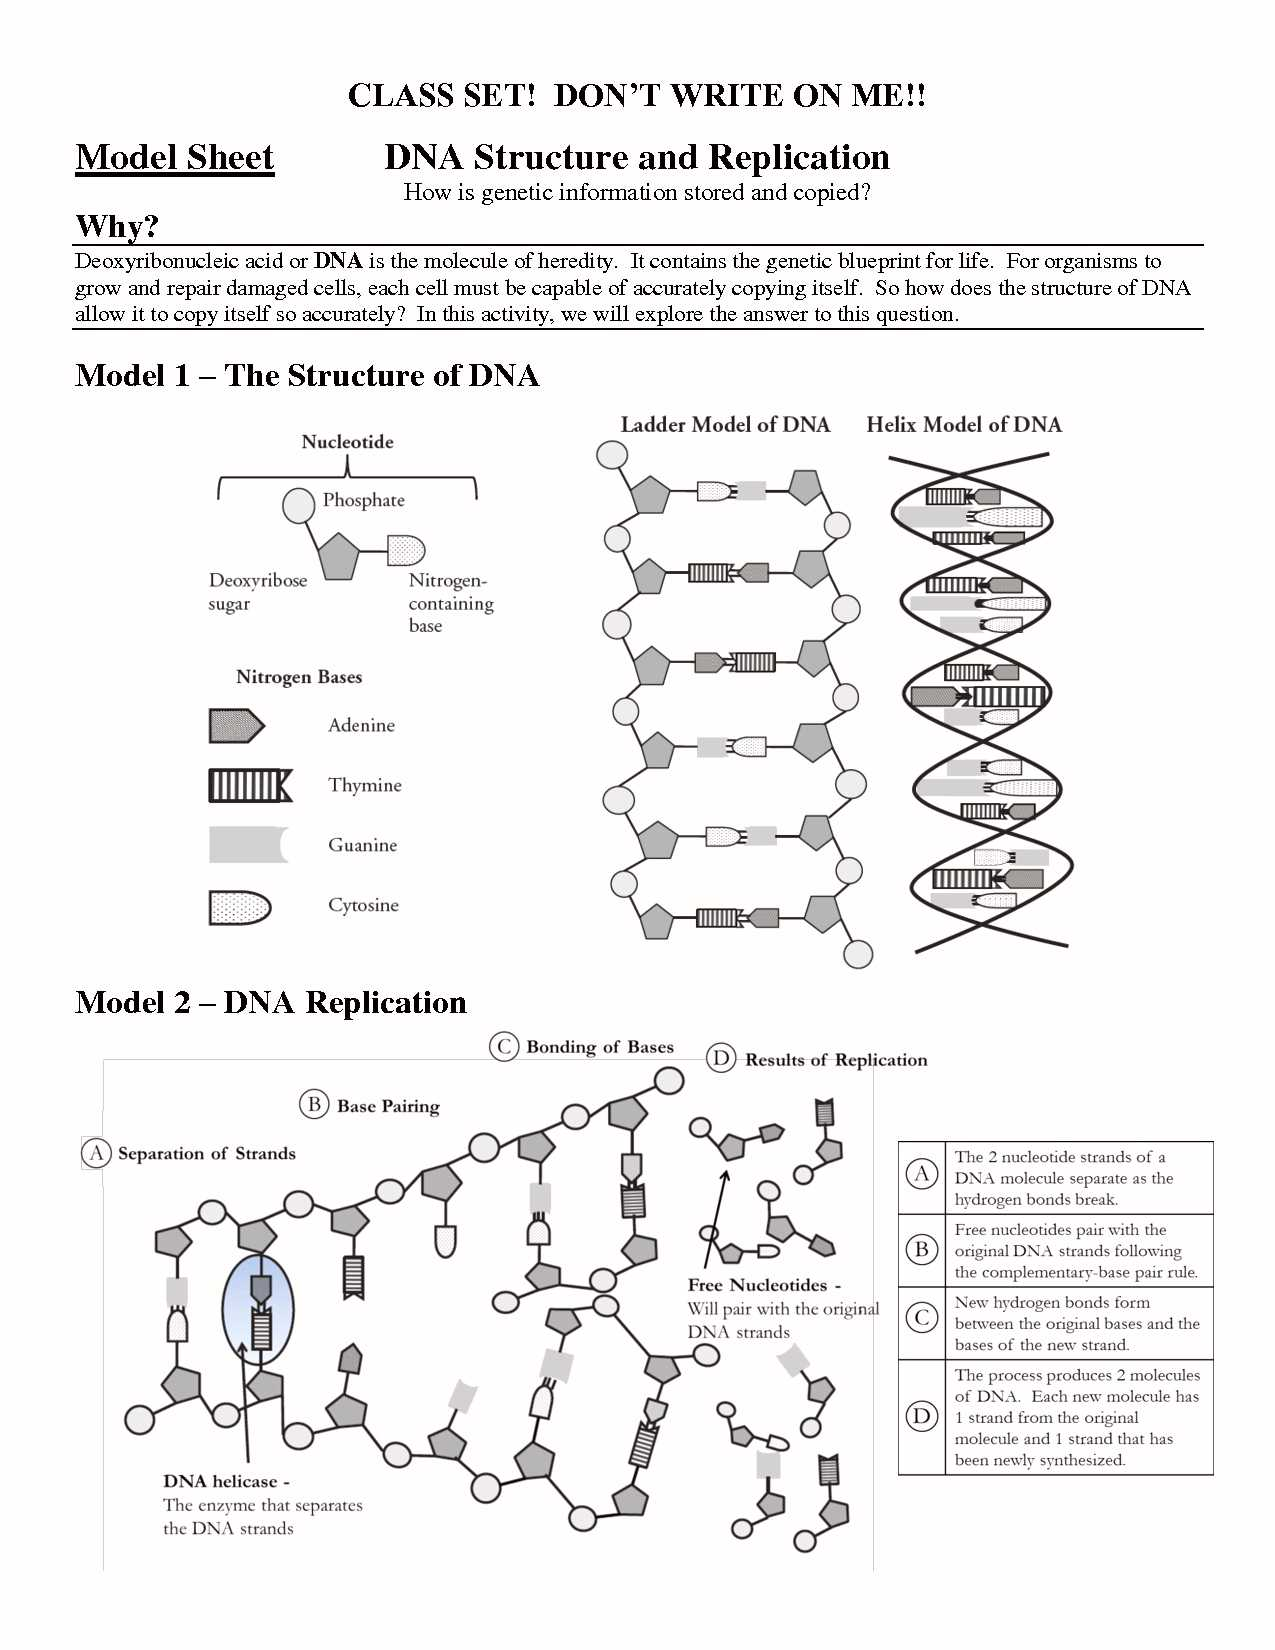 Dna Mutations Practice Worksheet Answer Key as Well as Dna Coloring Transcription and Translation Answer Key Awesome